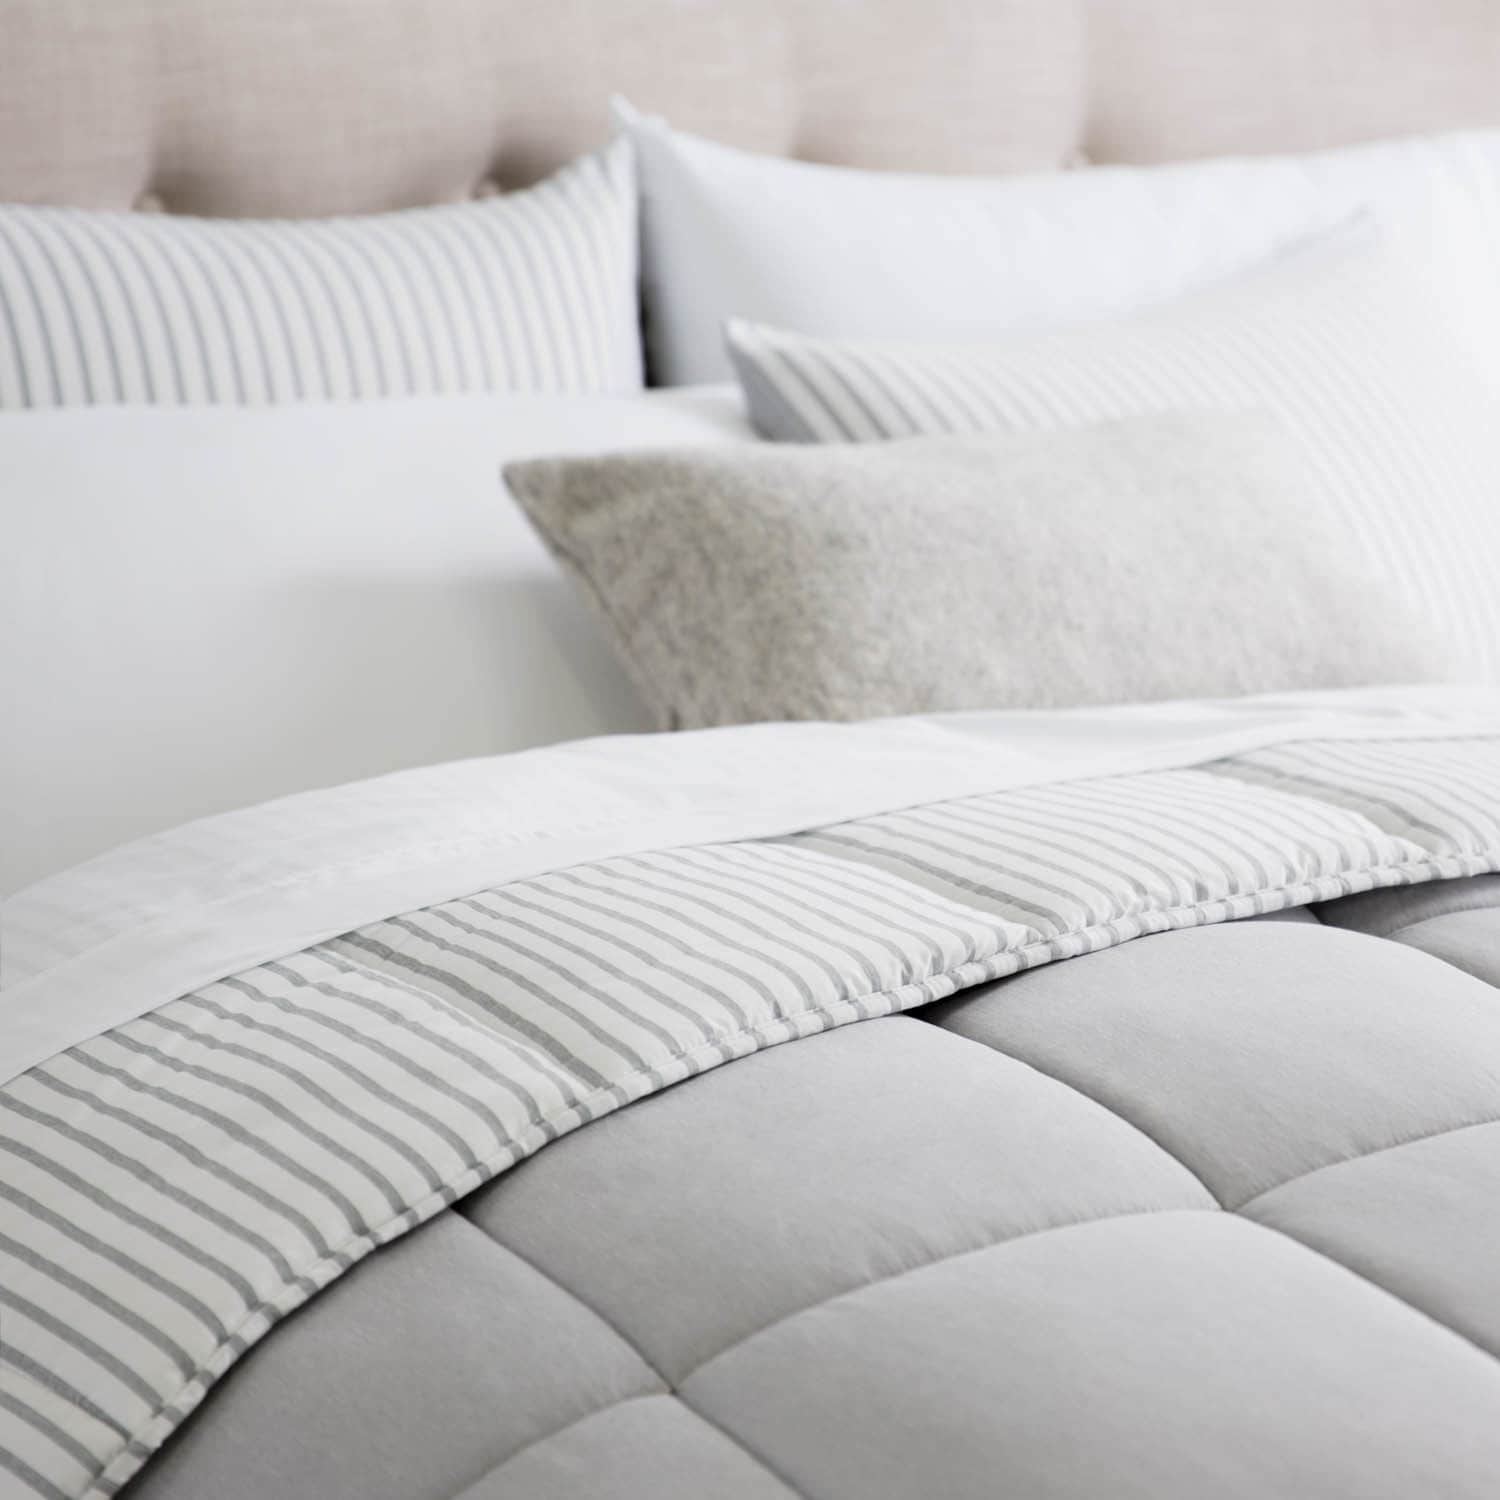 set save ivory gray solid oversized overfilled dsc bedding comforter reversible emboss and looks striped in